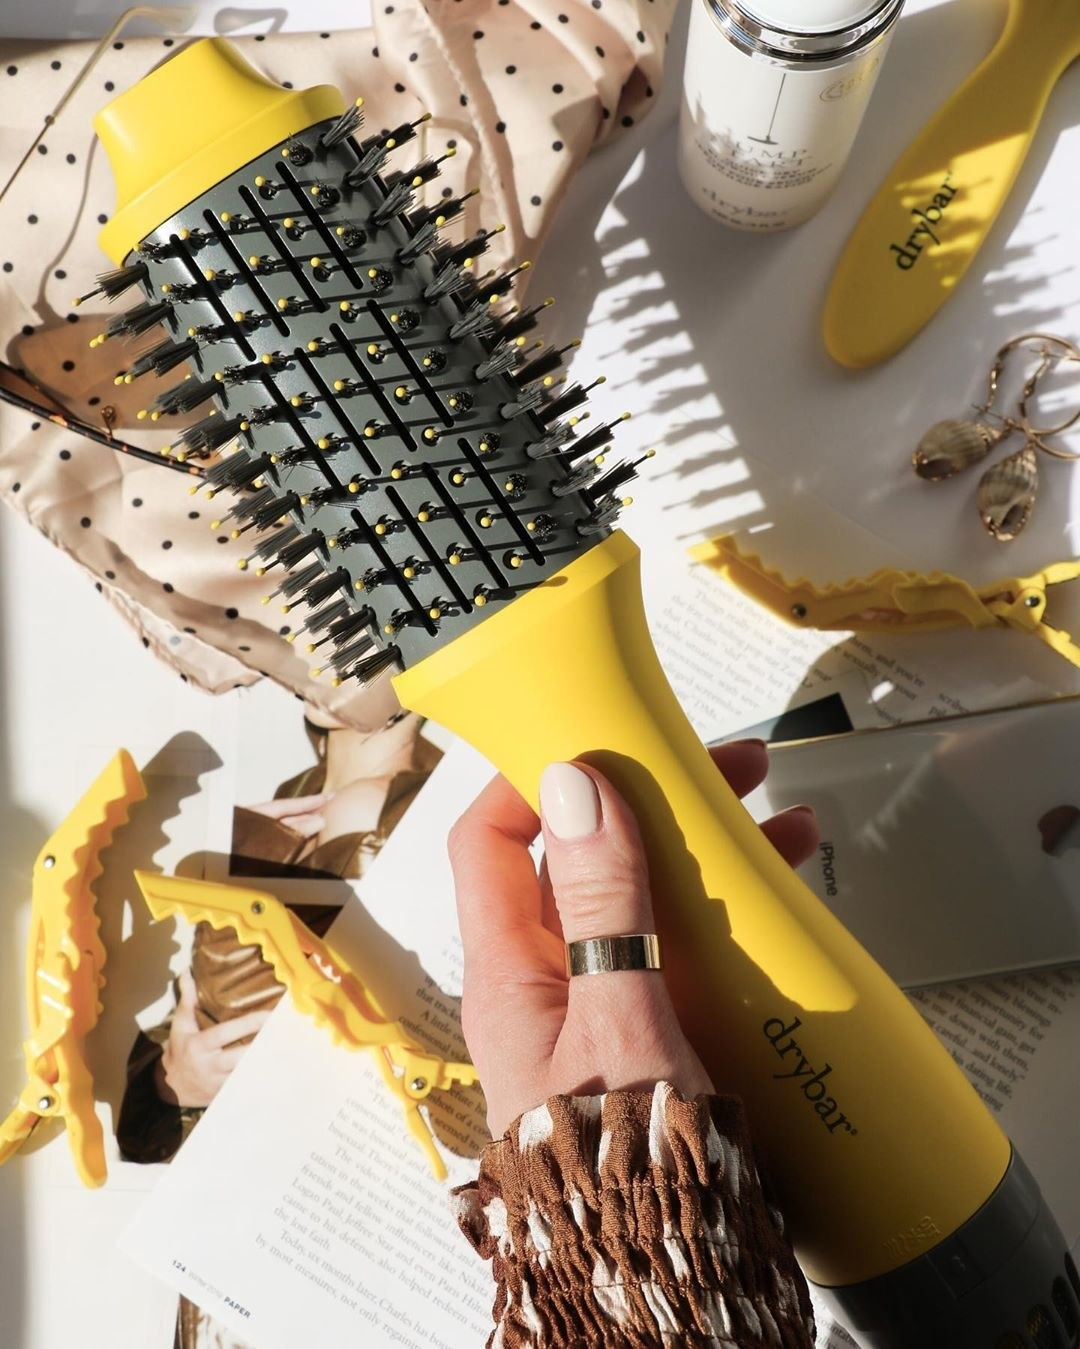 A hand holds the elliptical cylinder hot air brush. It's a bit flatter than a pure cylindrical round brush. The bristles are nylon and tufted